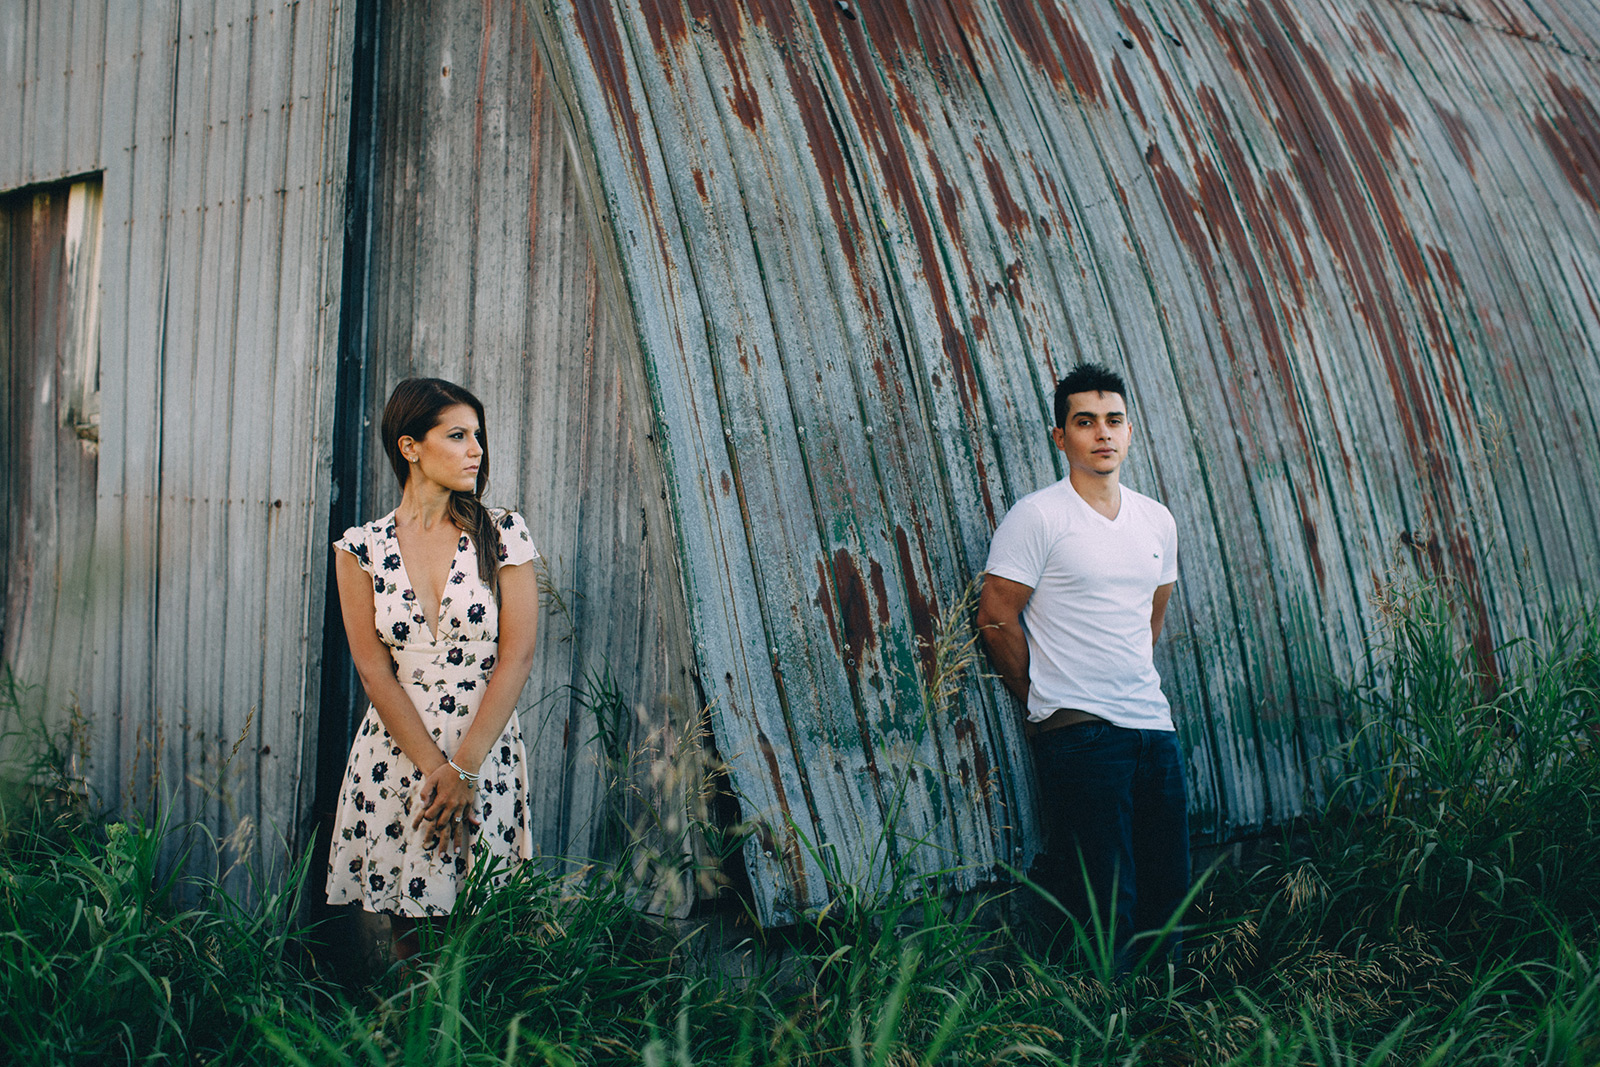 Rural-Ontario-modern-lifestyle-engagement-session-Sam-Wong-Visual-Cravings-AnJ_06